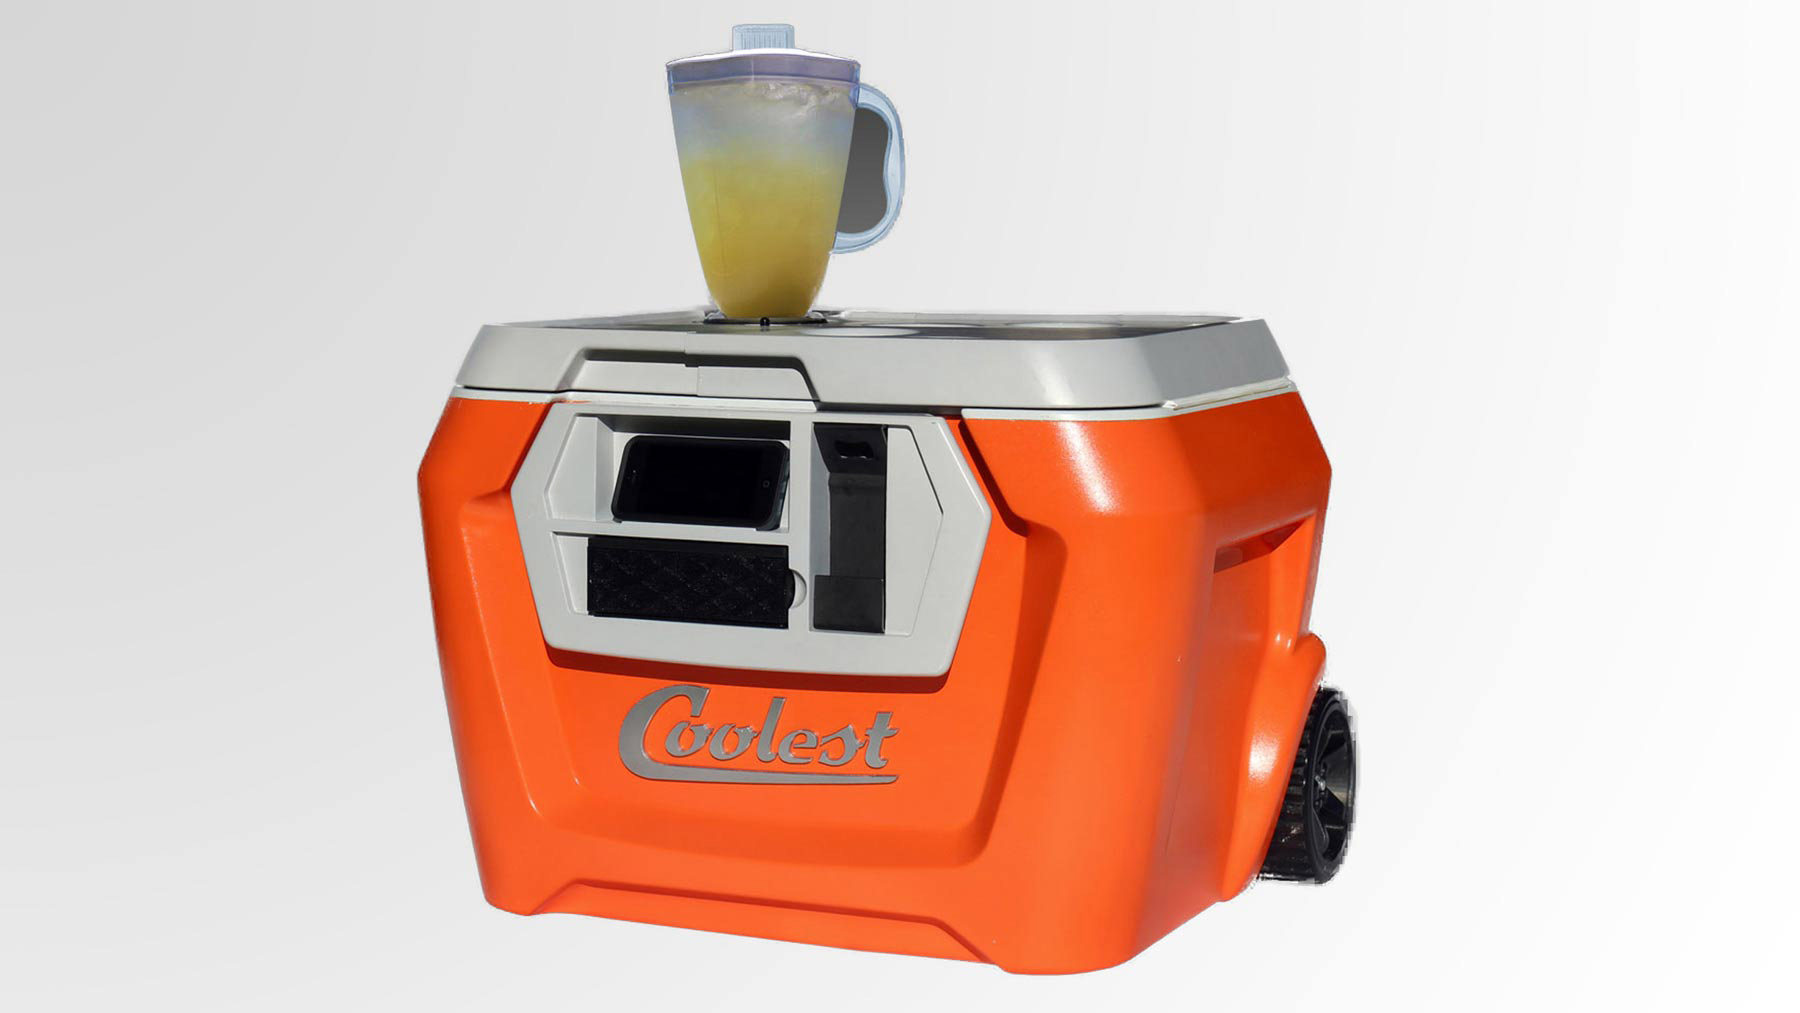 coolest-cooler-everything-in-one_h